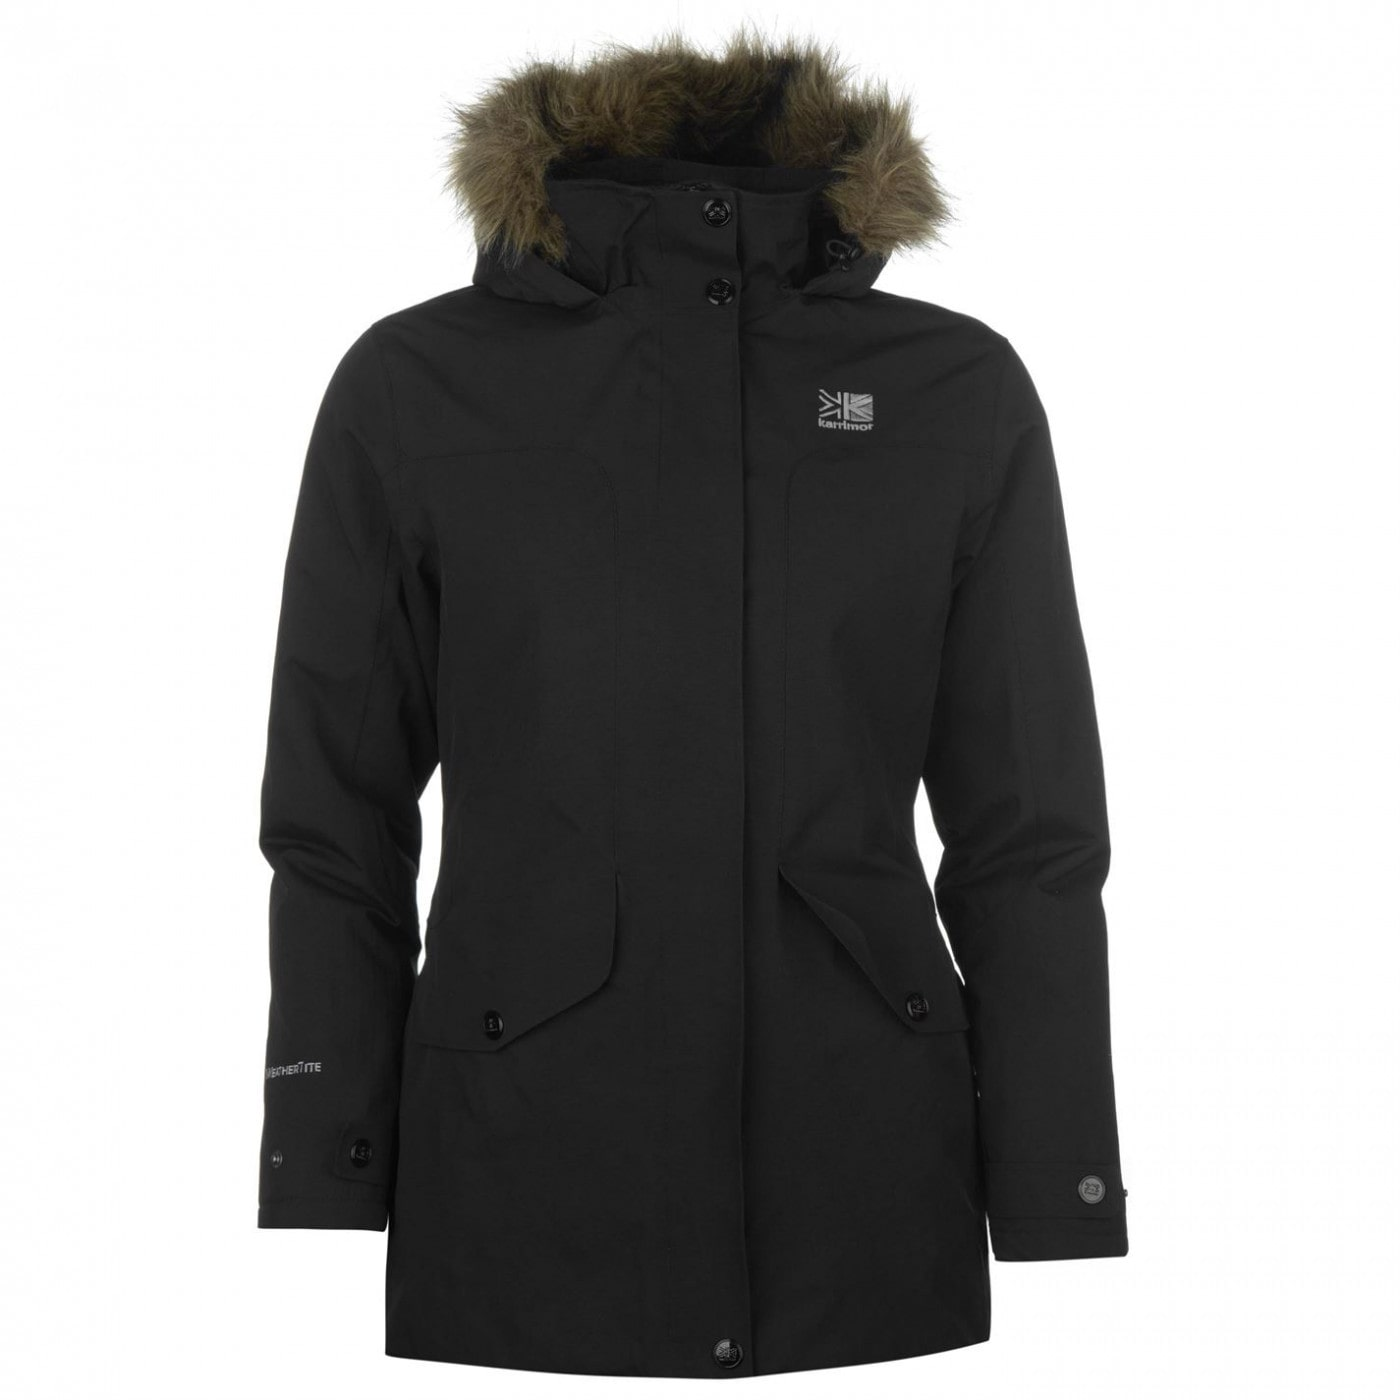 Karrimor Weathertite Parka Ladies